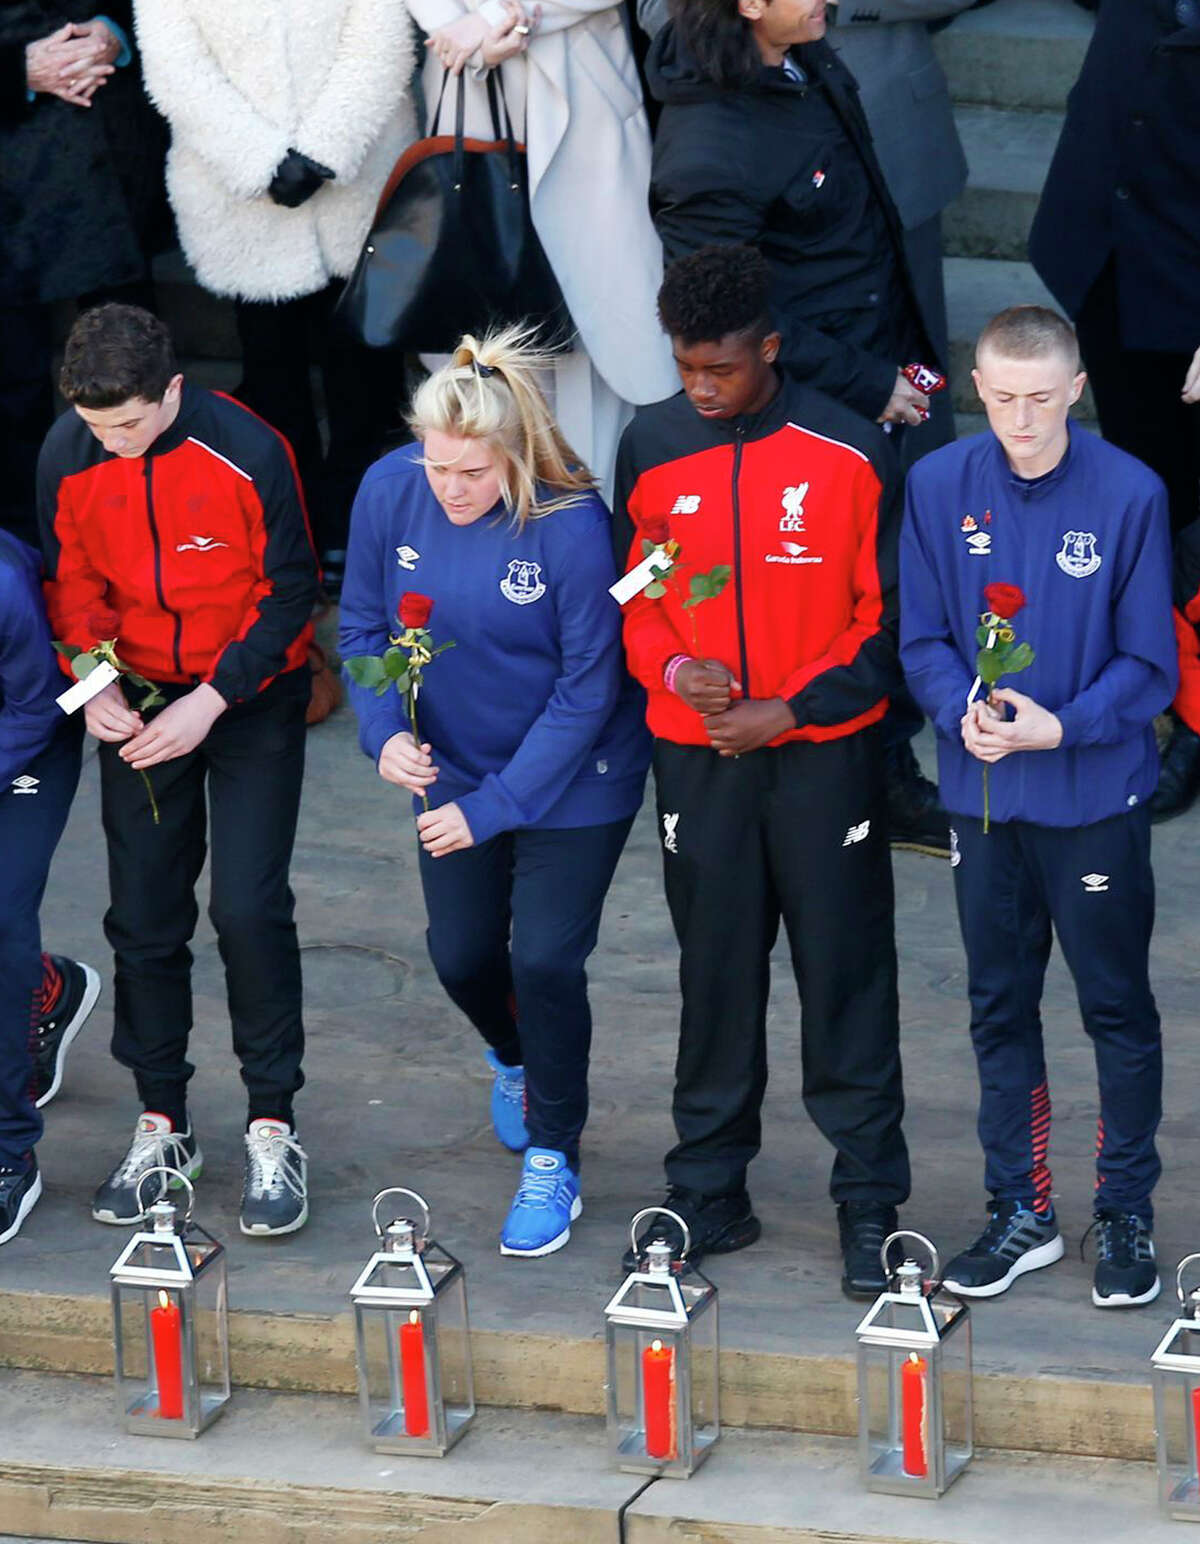 Representatives (96 in total) of Liverpool Football Club and Everton Football Club prepare to lay roses next to lanterns containing candles at a commemorative event at St George's Hall in Liverpool, England, Wednesday April 27, 2016, to mark the outcome of the Hillsborough inquest which ruled that 96 Liverpool fans who died as a result of the Hillsborough disaster on April 15, 1989, were unlawfully killed. (Peter Byrne/PA via AP) UNITED KINGDOM OUT NO SALES NO ARCHIVE